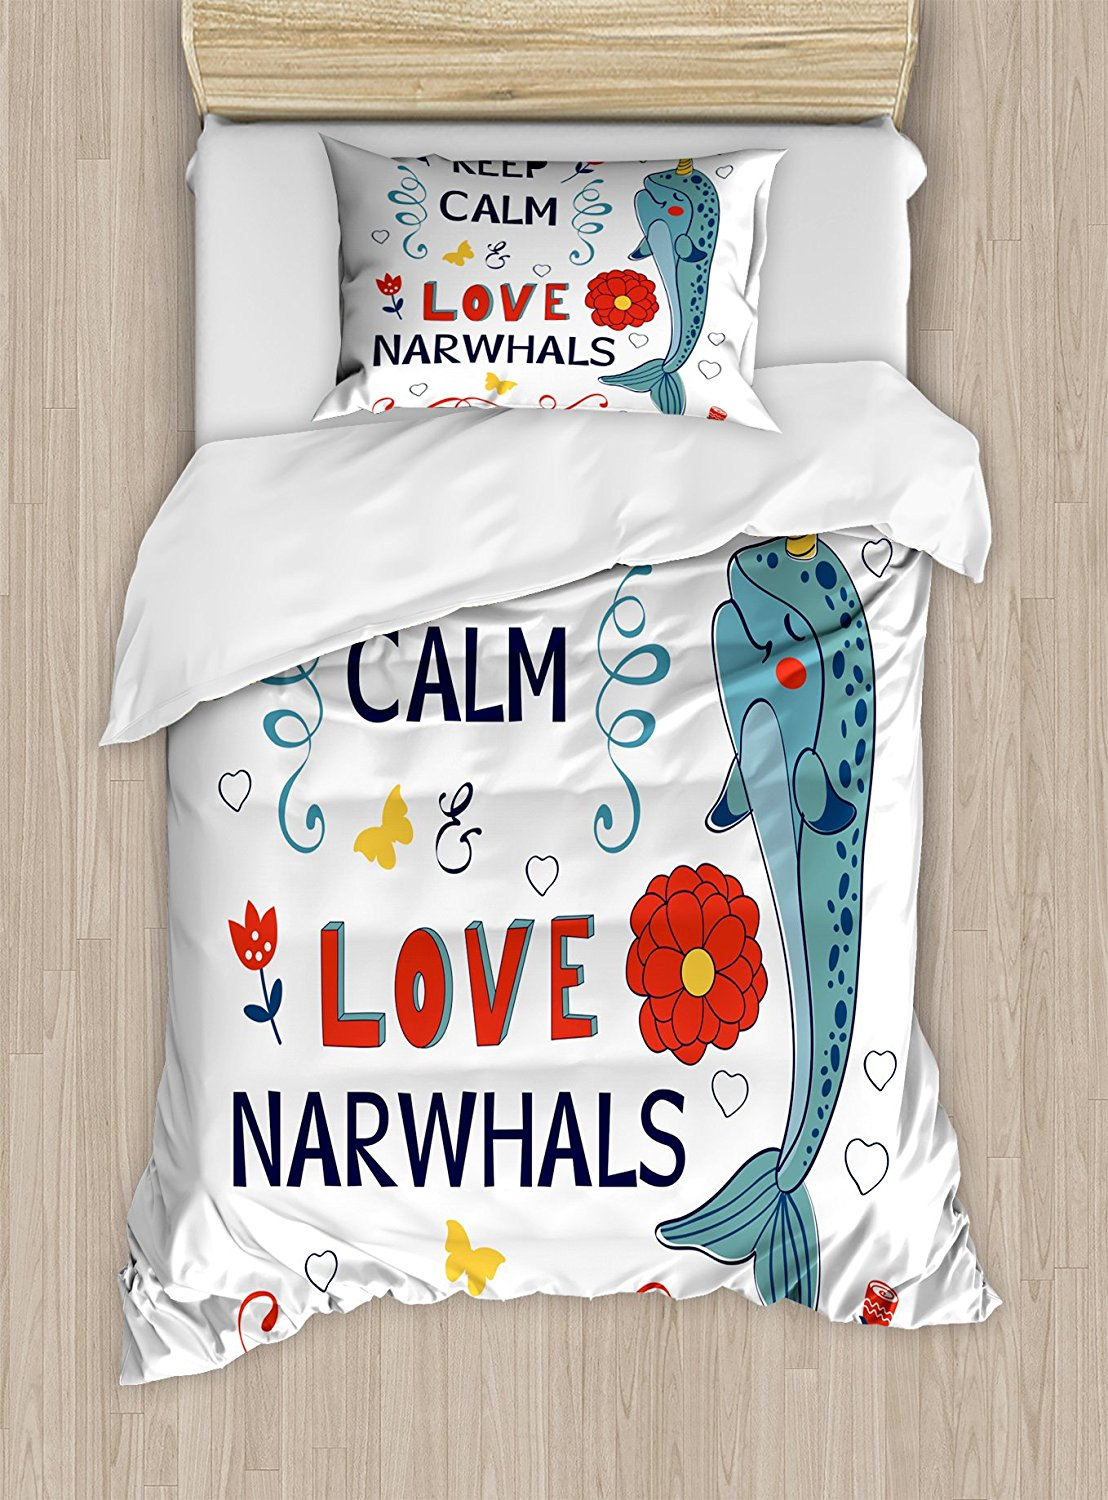 Narwhal Duvet Cover Set, Pop Culture Phrase with Unicorn of the Ocean Design Colorful Cartoon Character,4 Piece Bedding Set